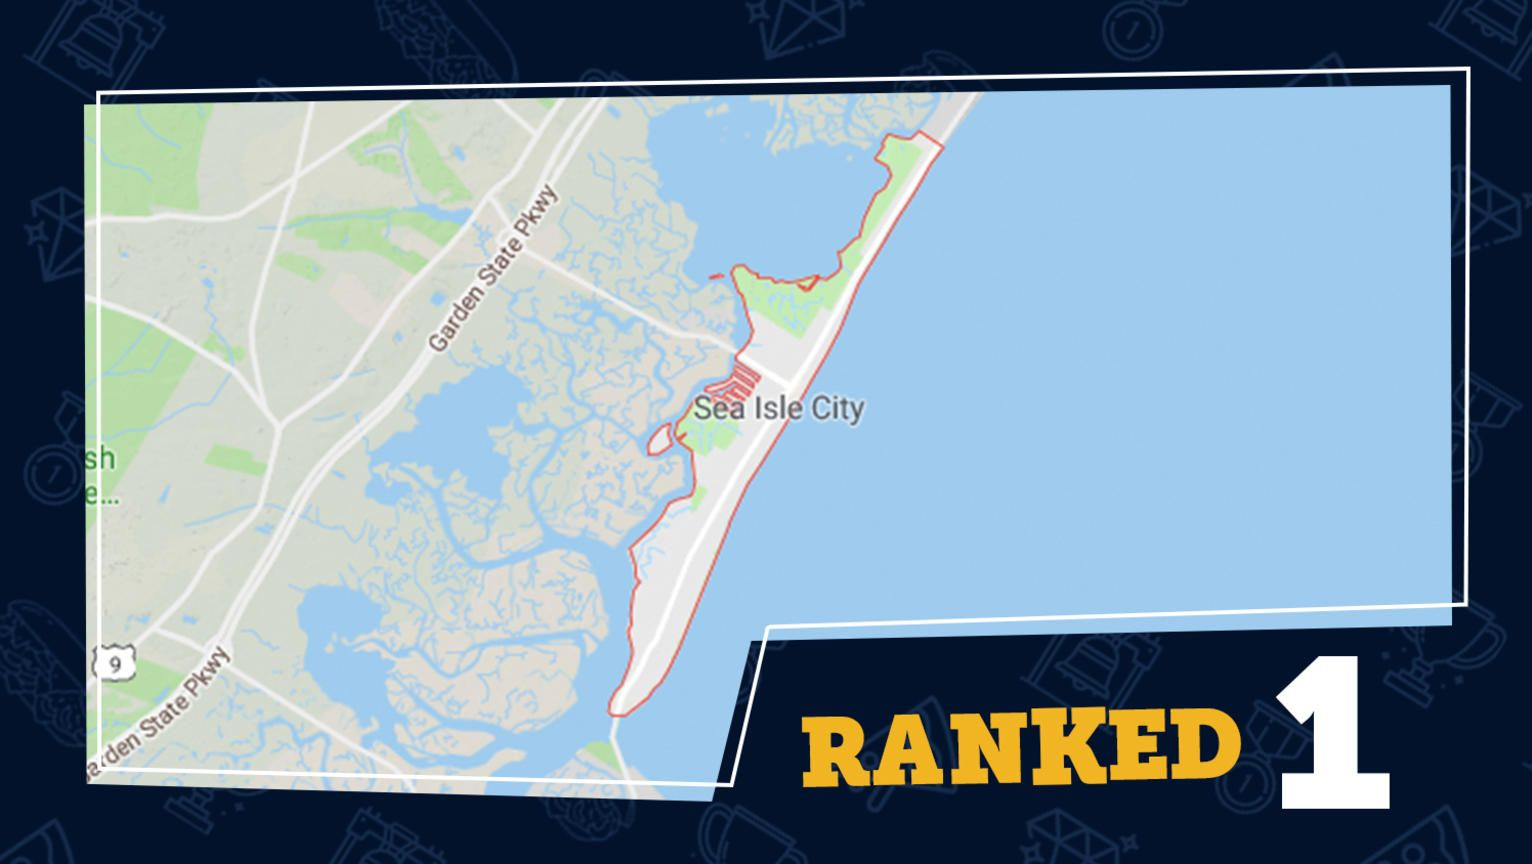 Top 10 Jersey Shore towns, ranked Sea isle city, Jersey